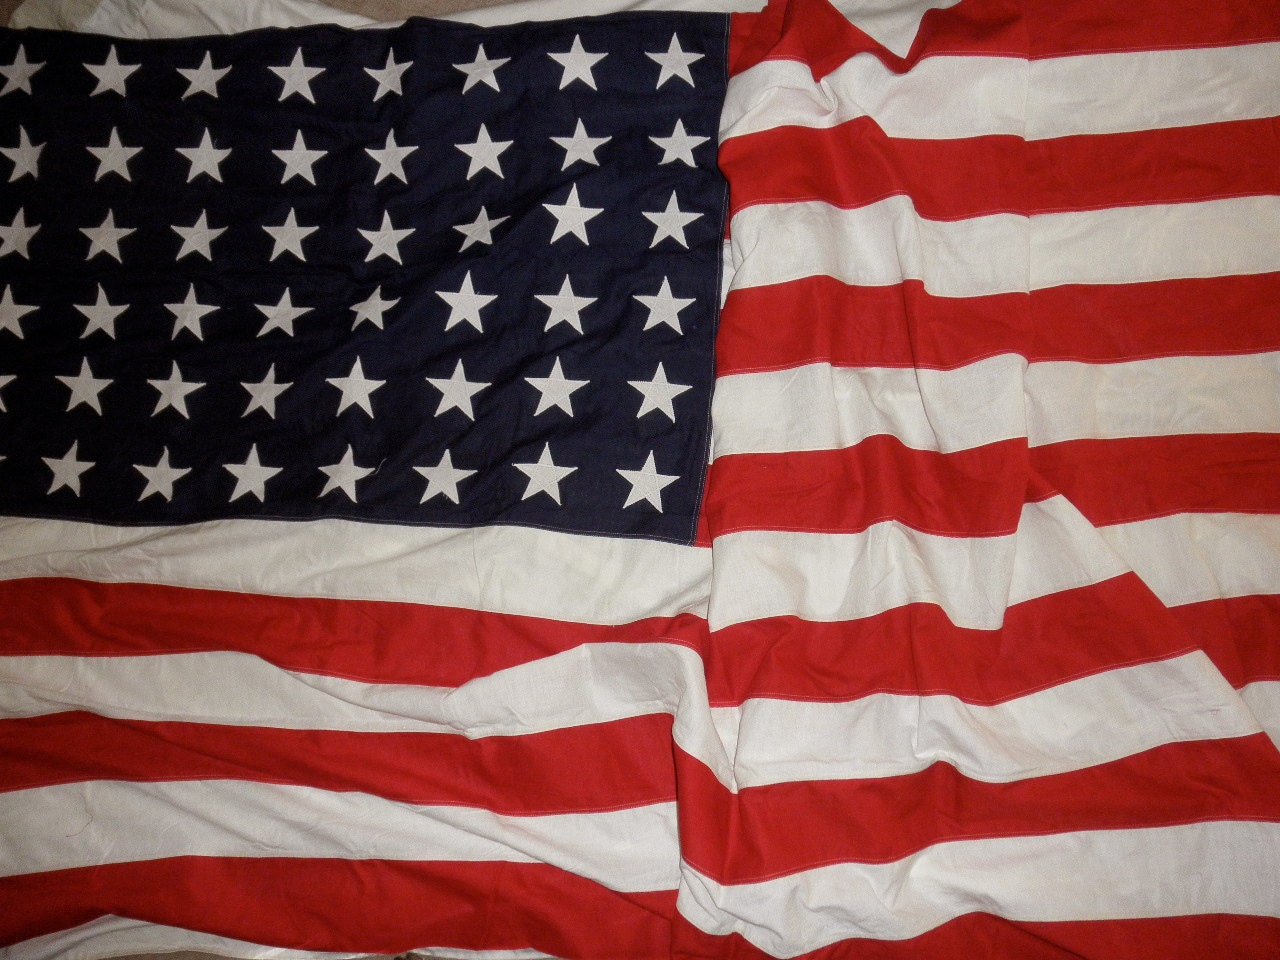 antique 48 star extra large 5' x 9.5' American flag-cotton,Fourth of July, Memorial Day - TrunkGypsies